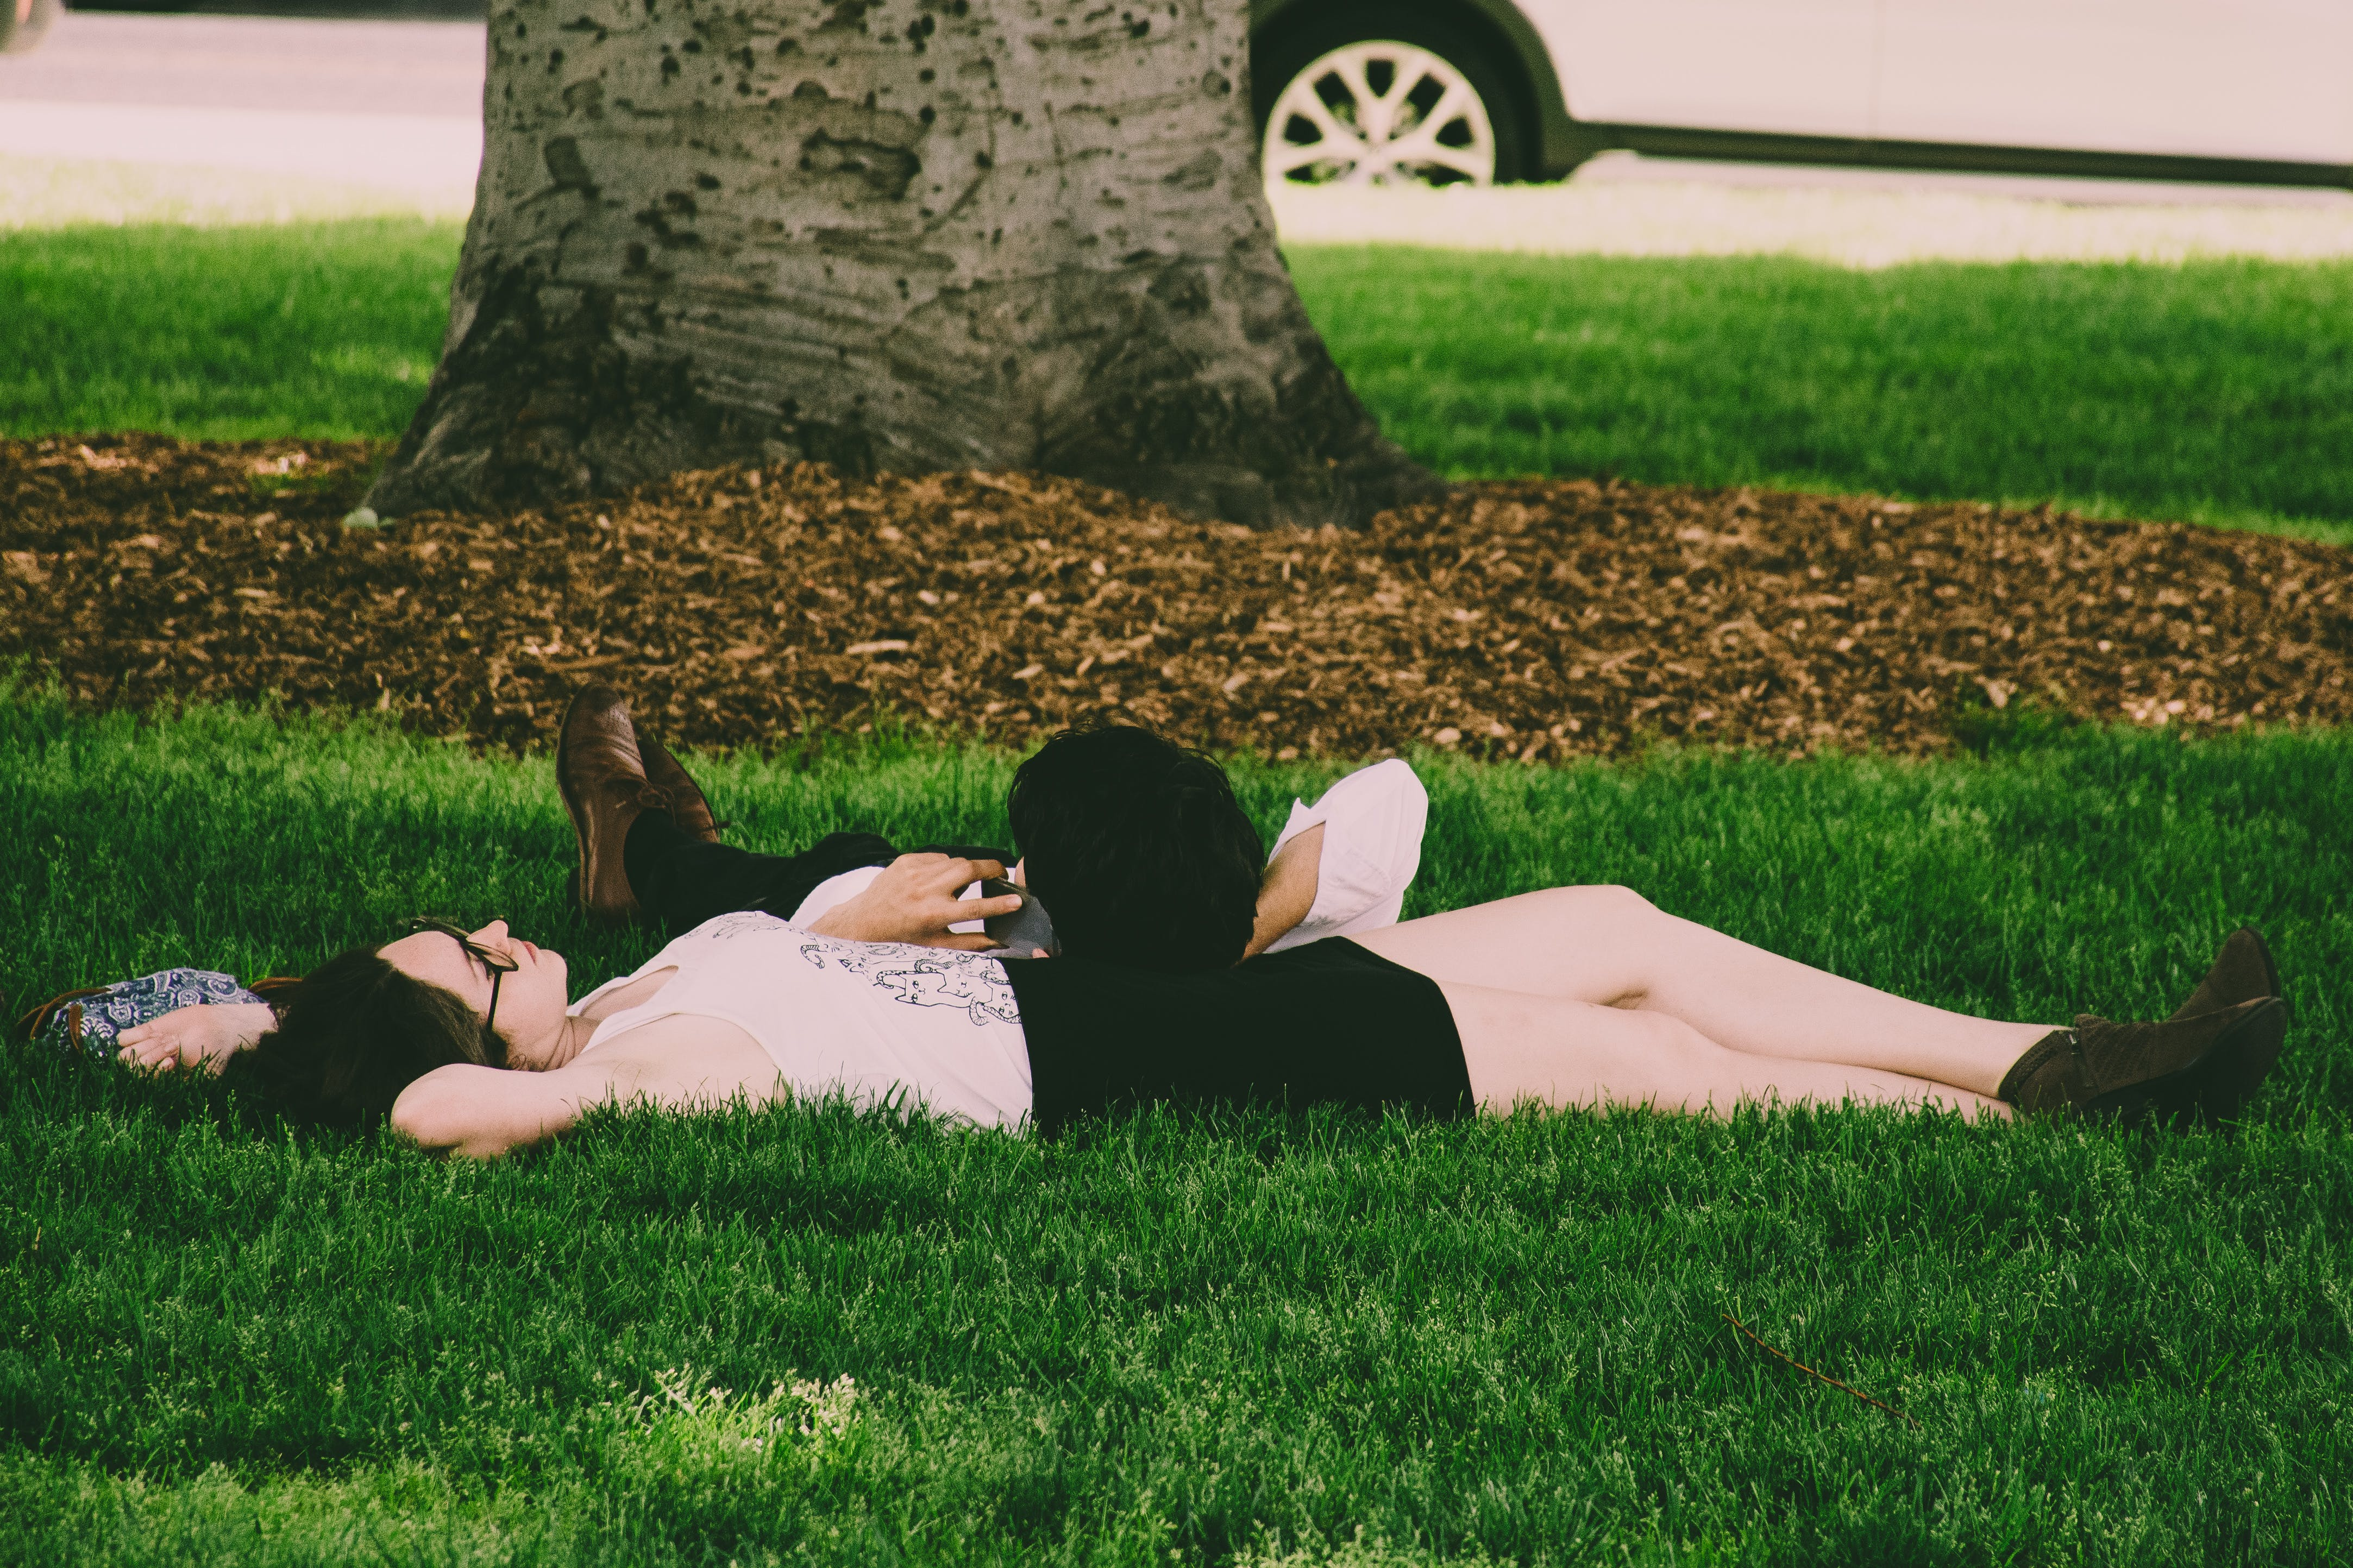 Woman Wearing White Tank Top Lying On Green Grass